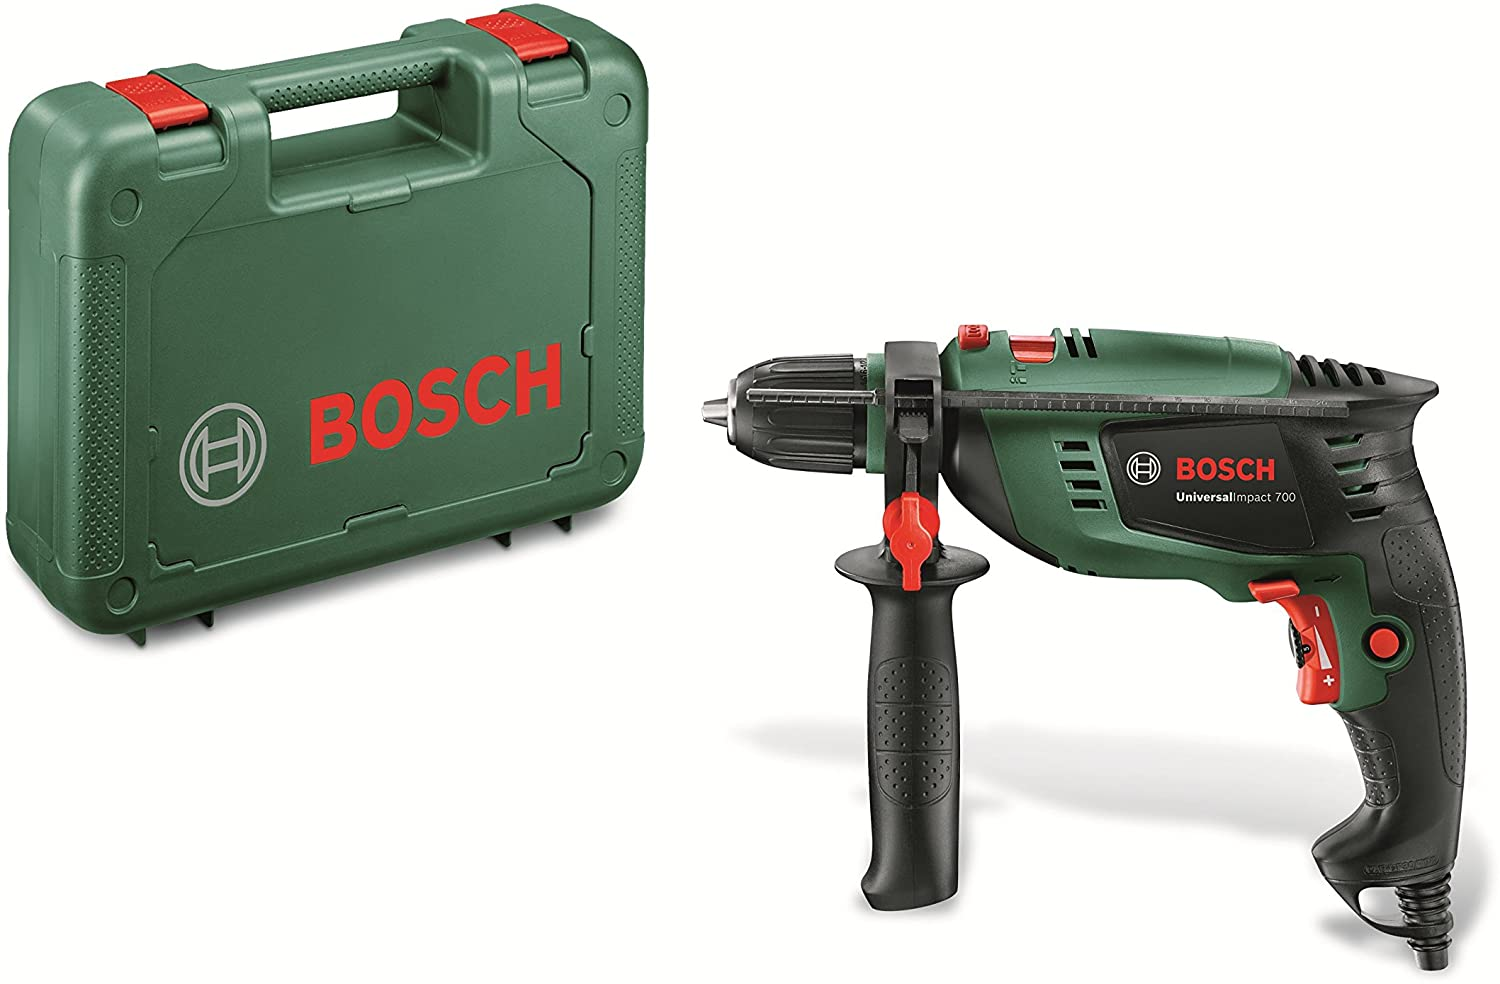 Bosch Universal Impact 700 - Hammer Drill (700 W, Additional handle, Depth stop, Carrying case)